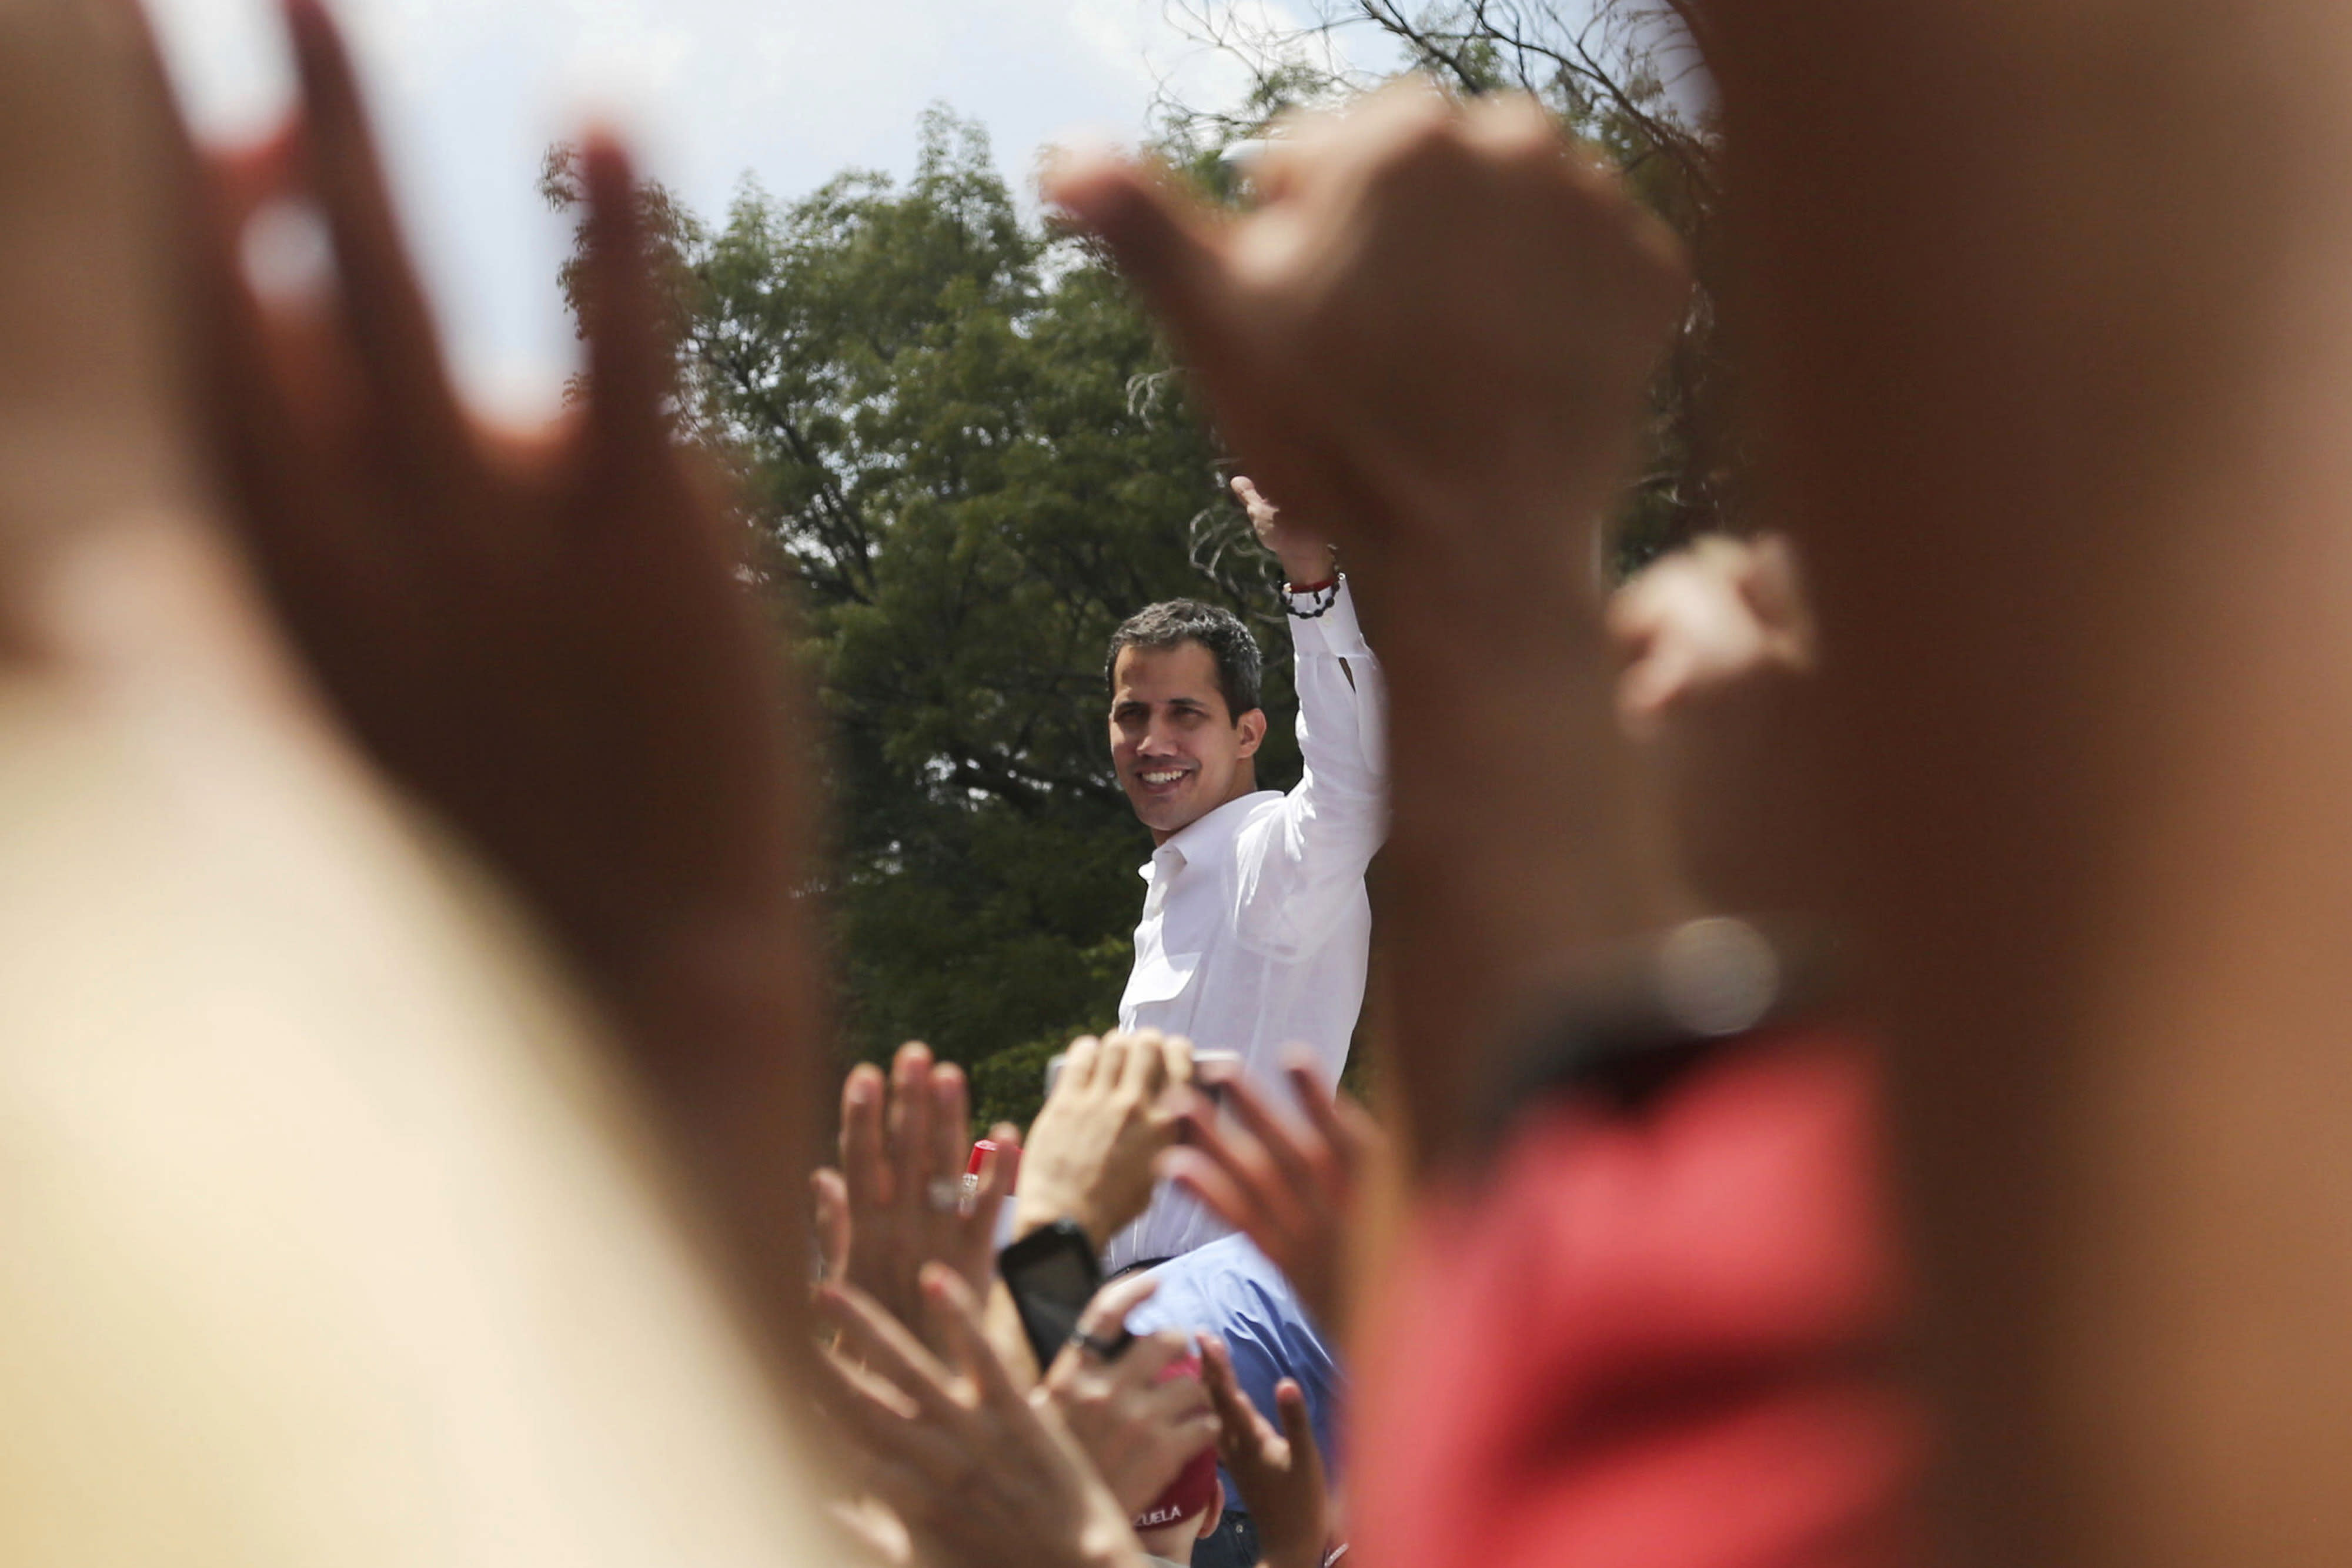 The leader of Venezuela's National Assembly Juan Guaido who declared himself the country's interim president, greets supporter upon his arrival to a rally against the government of President Nicolas Maduro in Caracas, Venezuela, Saturday, March 9, 2019. (AP Photo/Fernando Llano)